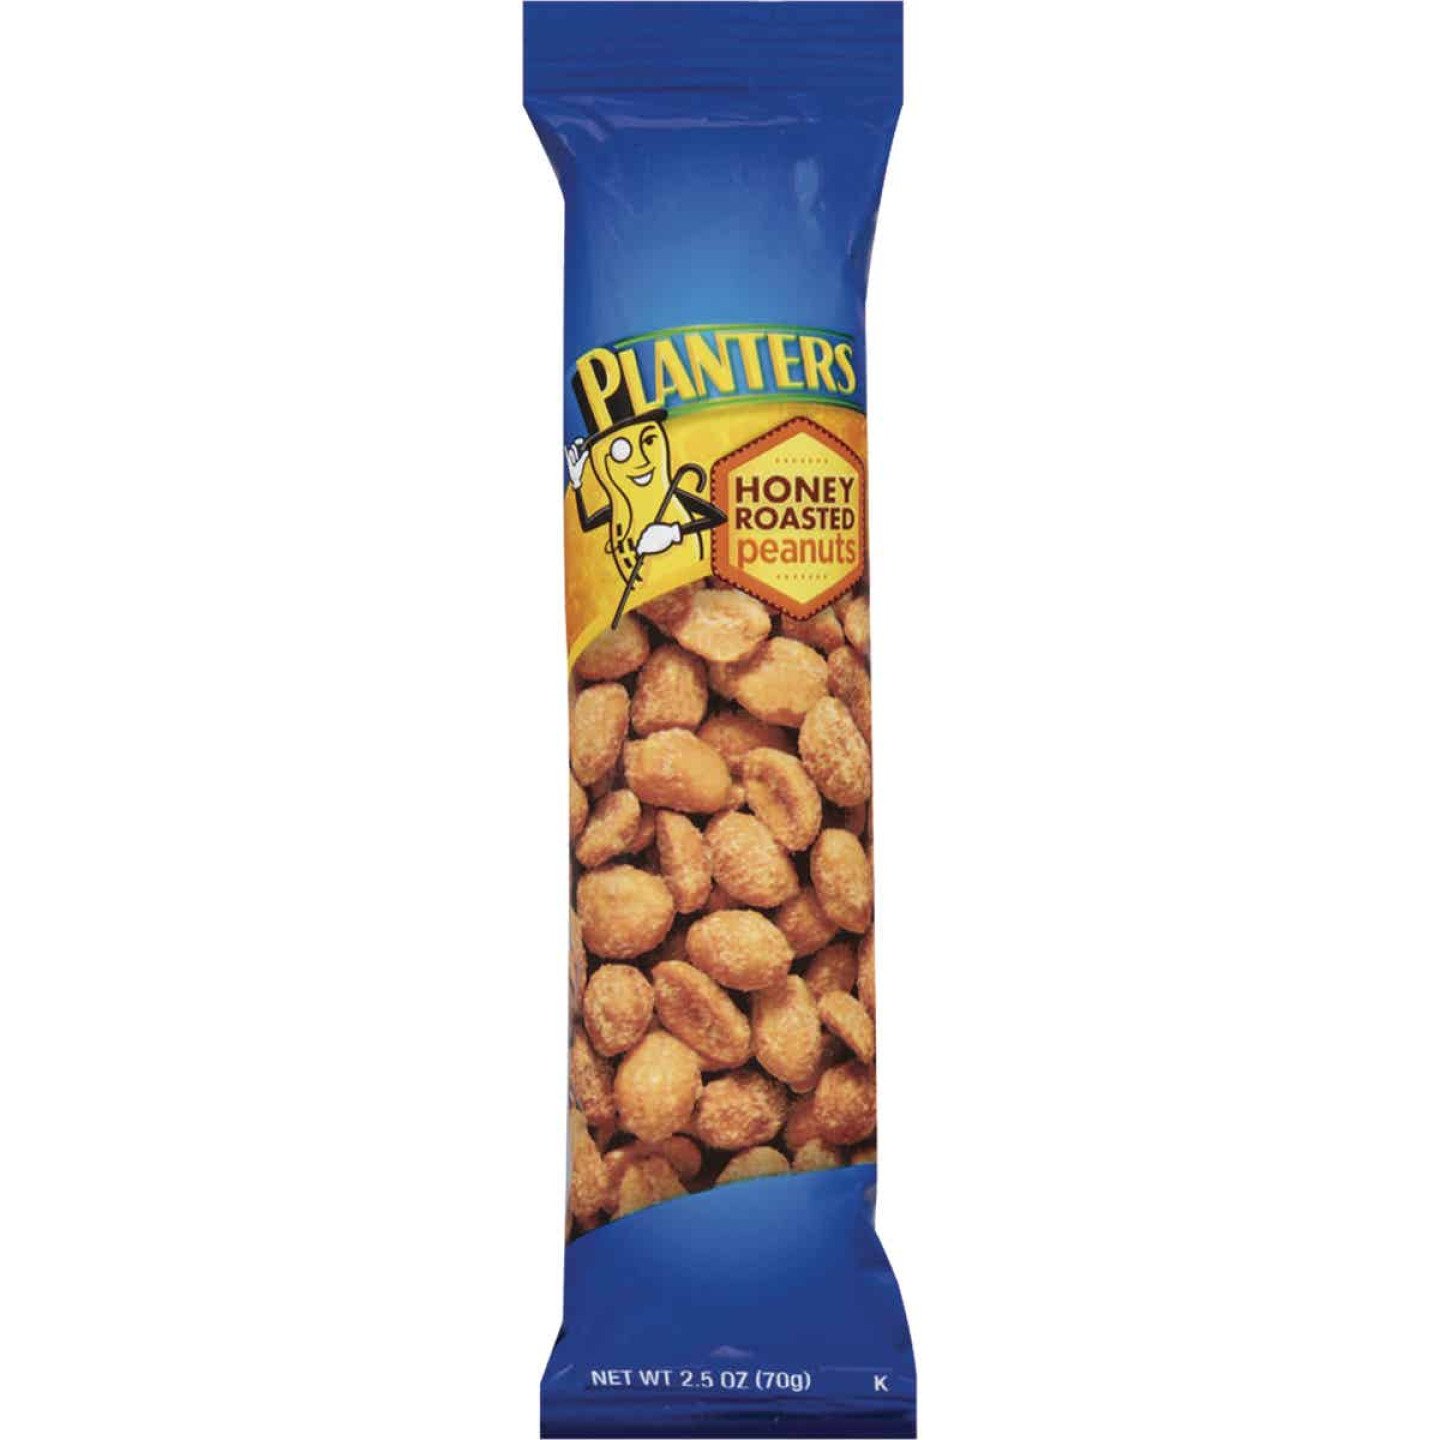 Planters 2.5 Oz. Honey Roasted Peanuts Image 1